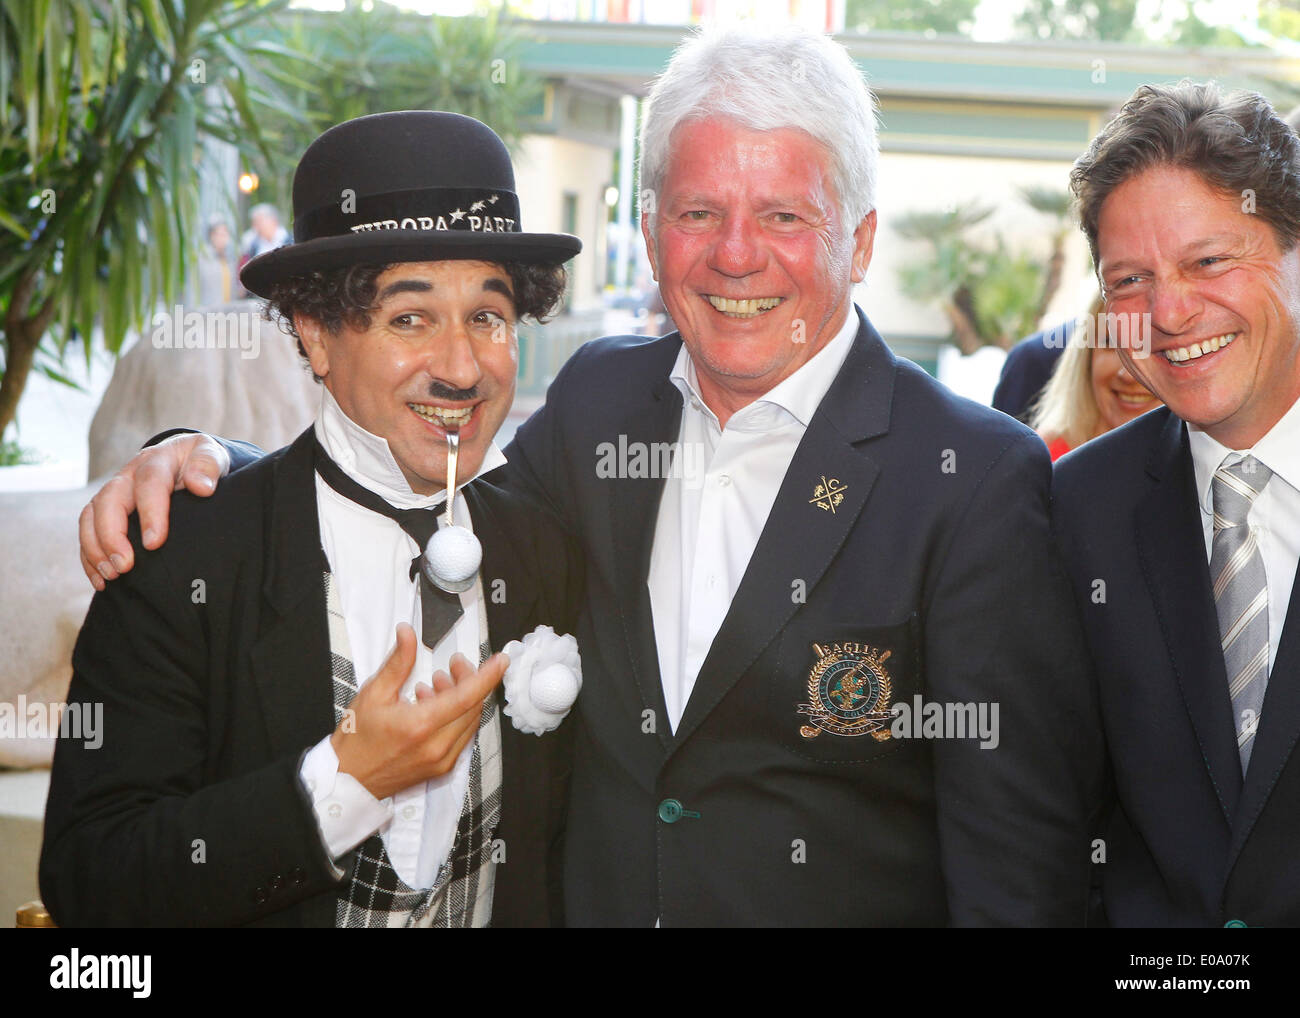 Herbolzheim, Germany - May 5, 2014: Eagles Charity Golf Cup and Gala at Golfclub Breisgau and Europa Park, Rust with Music Producer Thomas Stein and Charly Credit:  dpa picture alliance/Alamy Live News - Stock Image